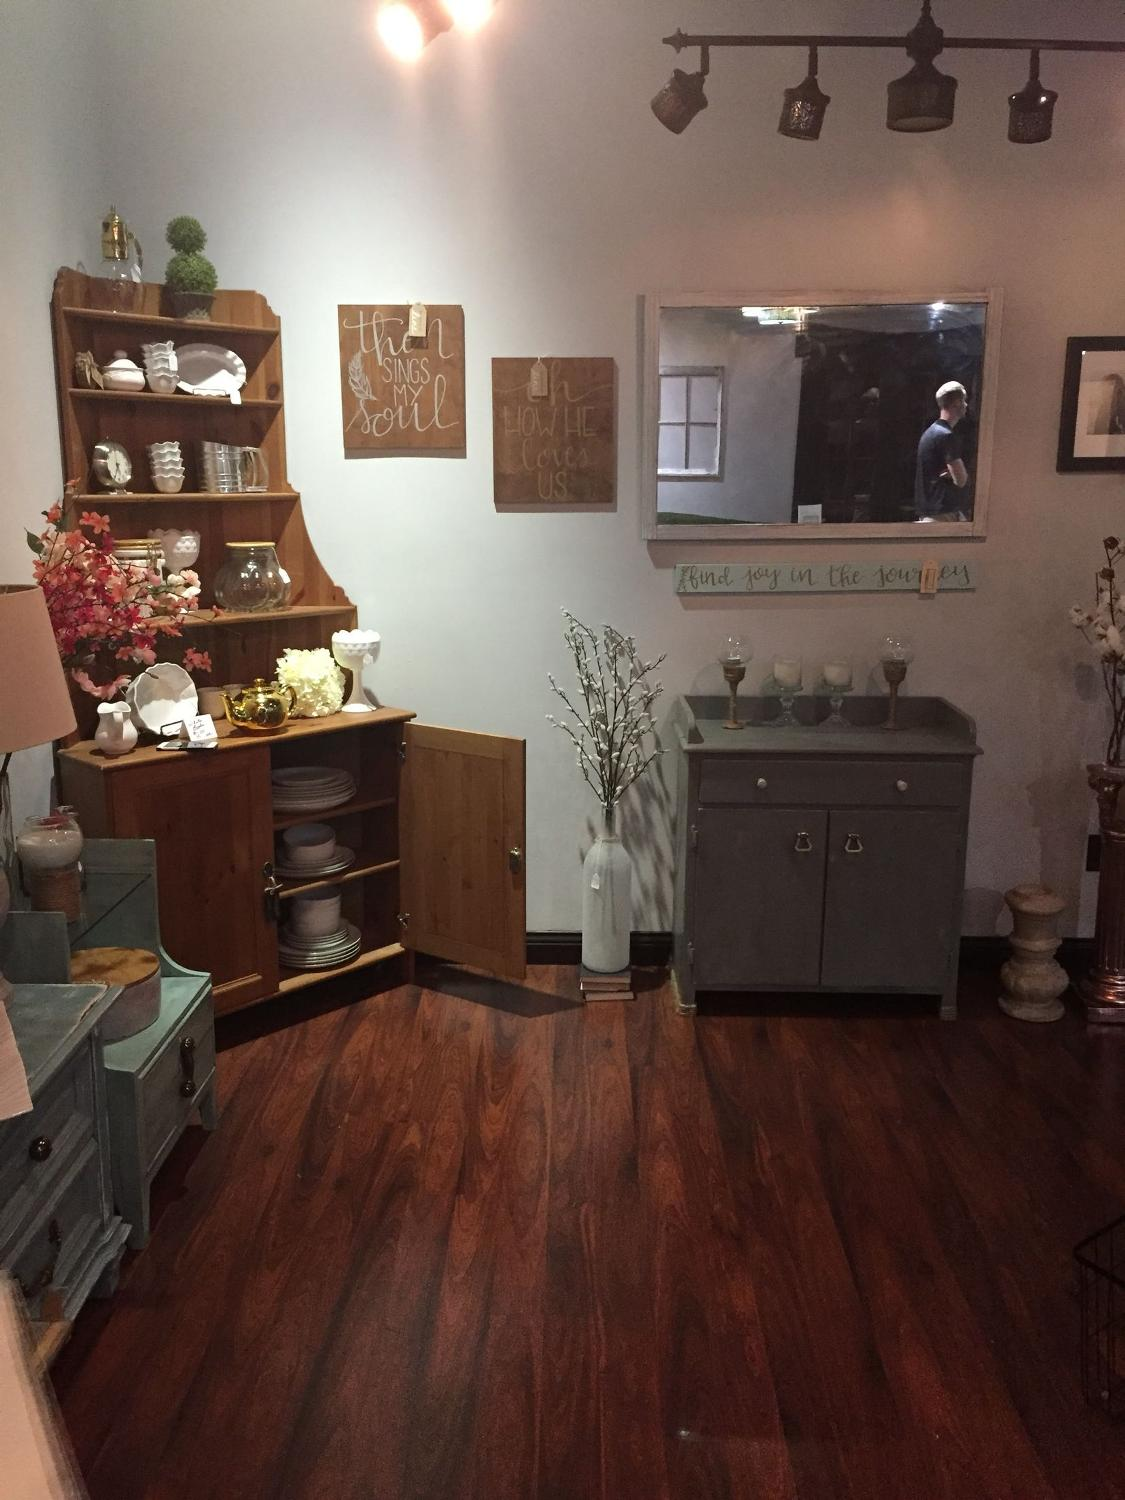 Best Furniture Home Decor Candles Local And Hand Made For Sale In Peoria Illinois For 2018